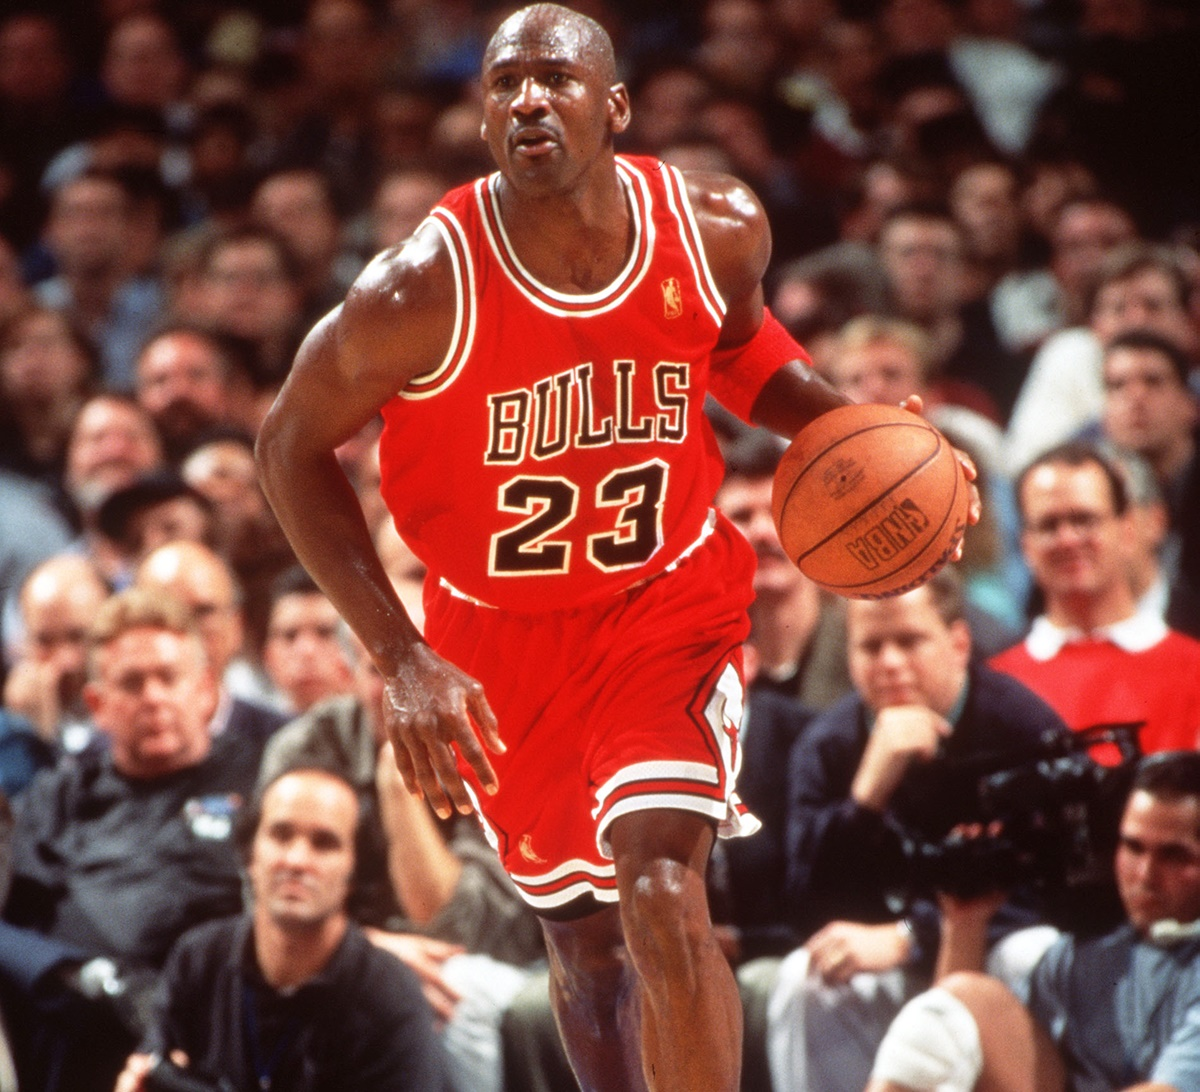 vestido Fácil de suceder Cereal  Michael Jordan's Chicago Bulls signing-day jersey up for auction - Rediff  Sports